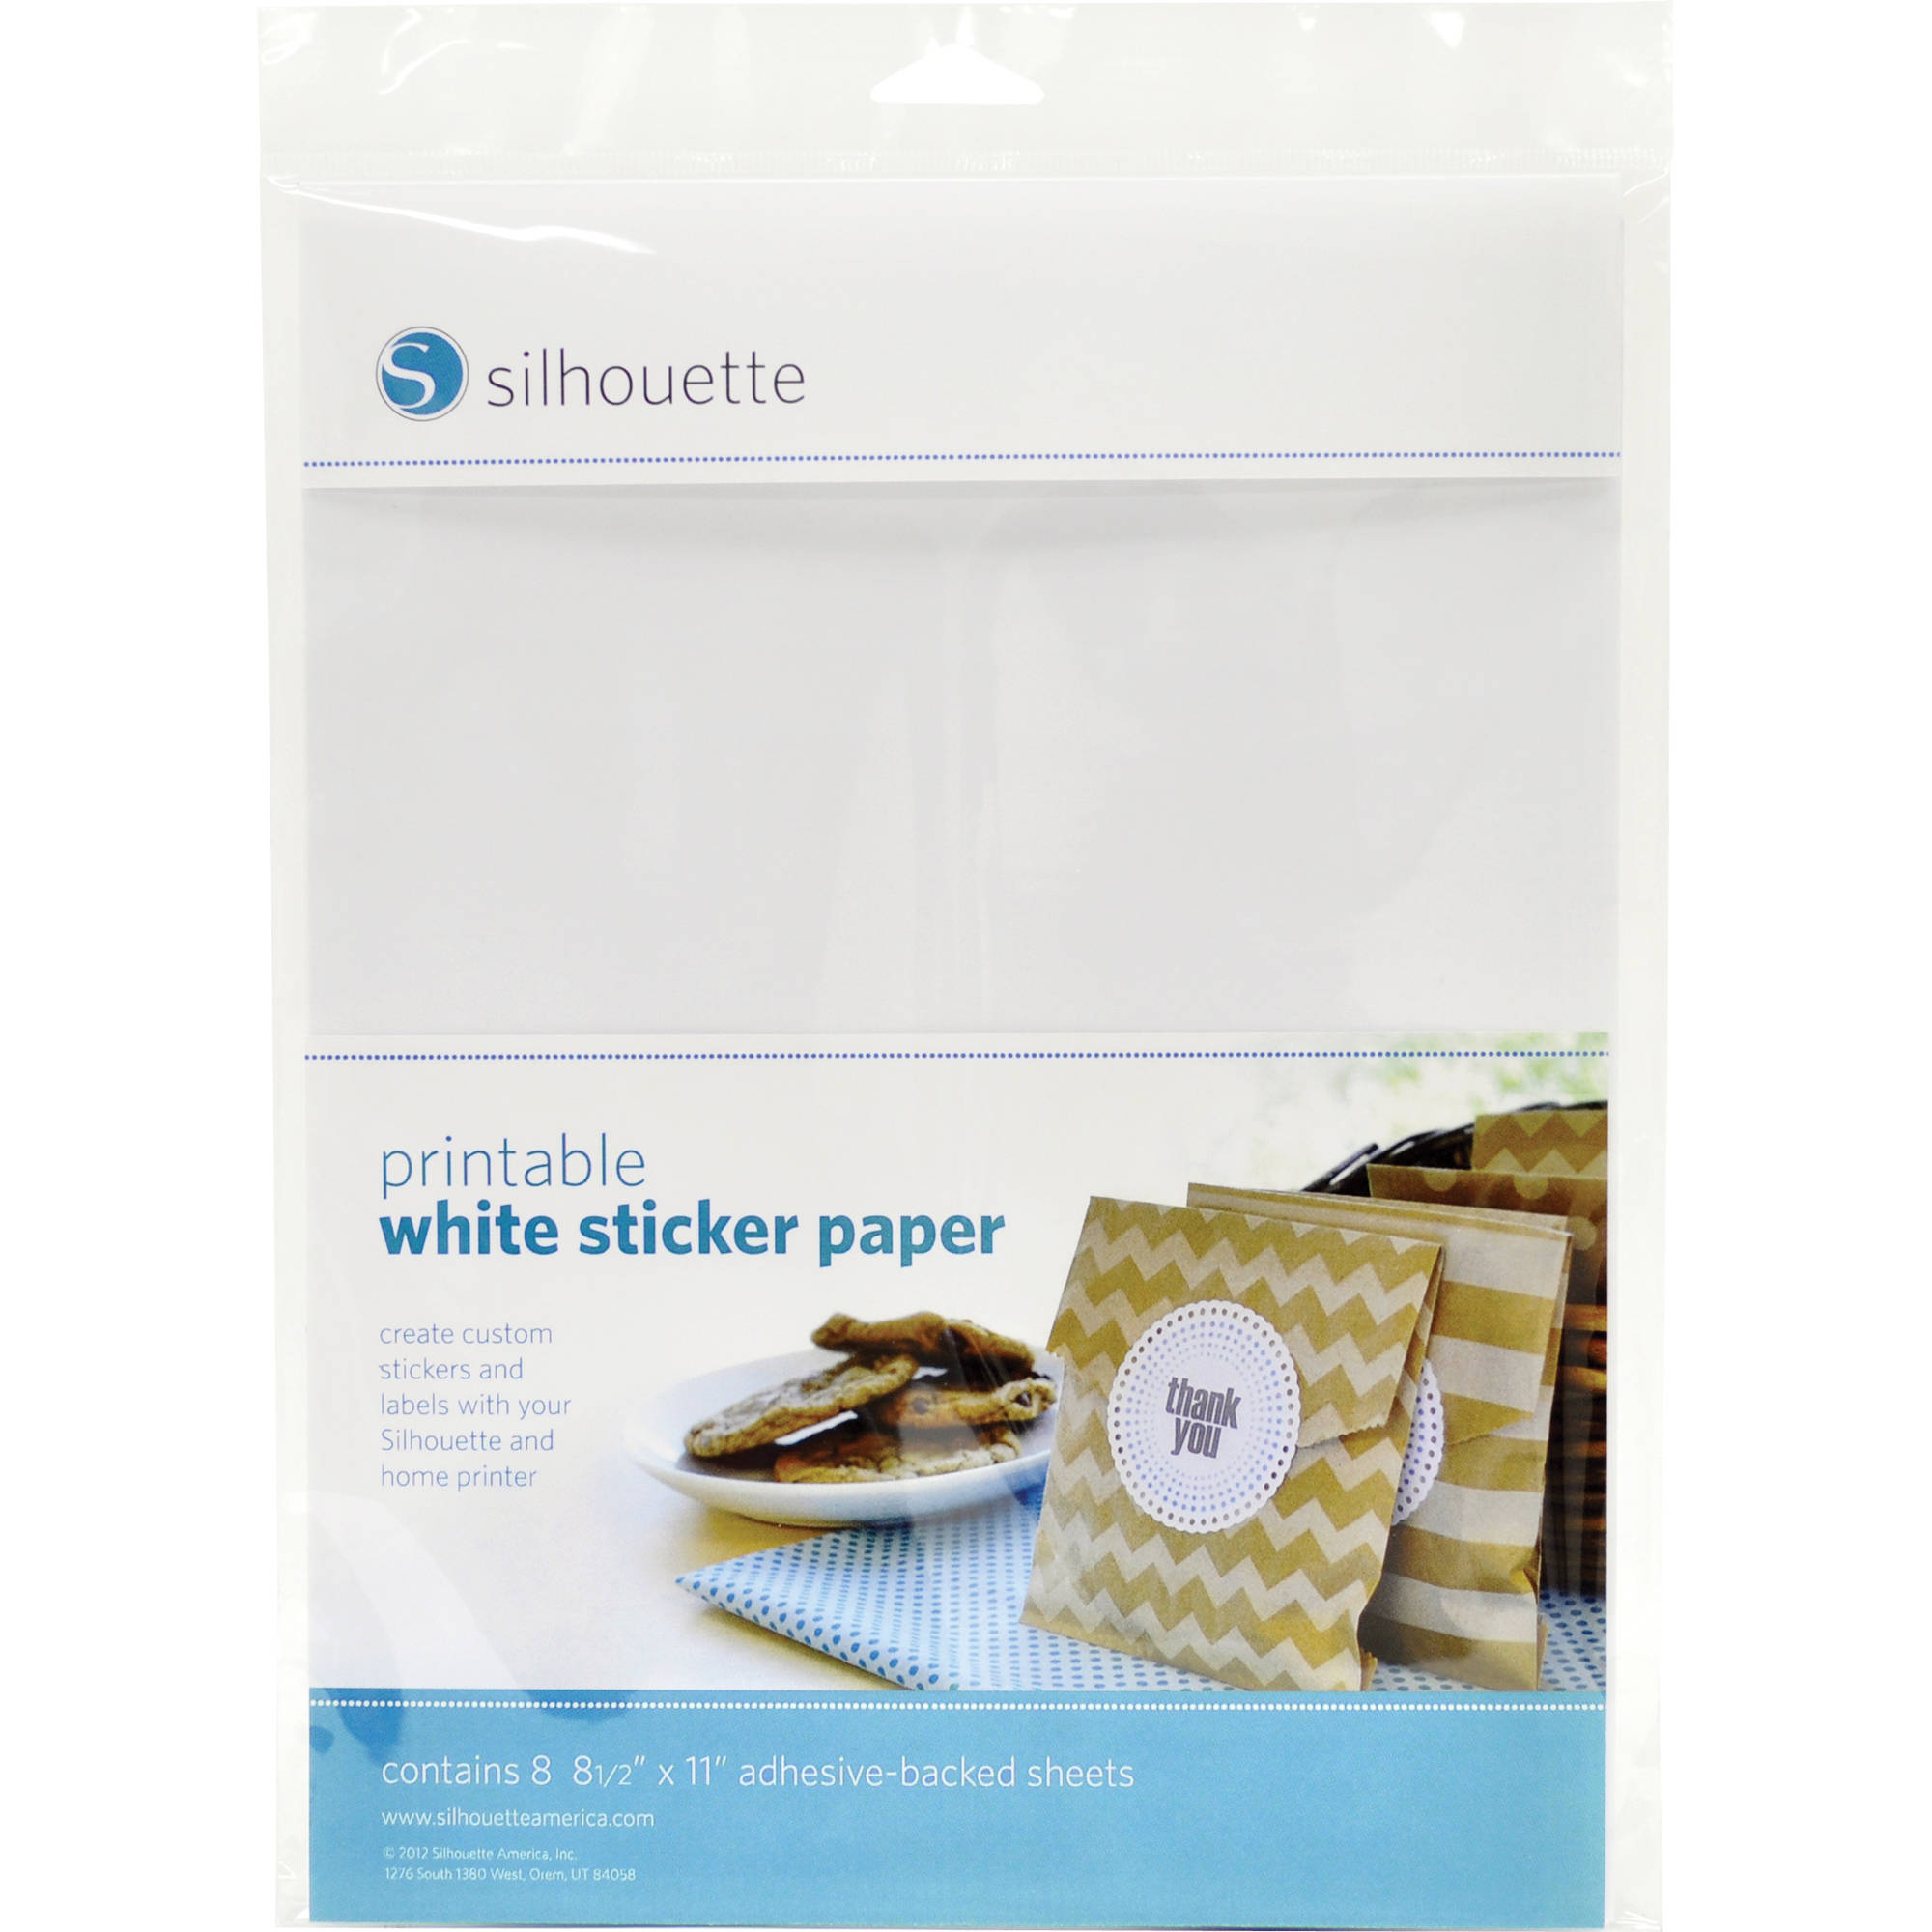 Versatile image pertaining to sticker printable paper